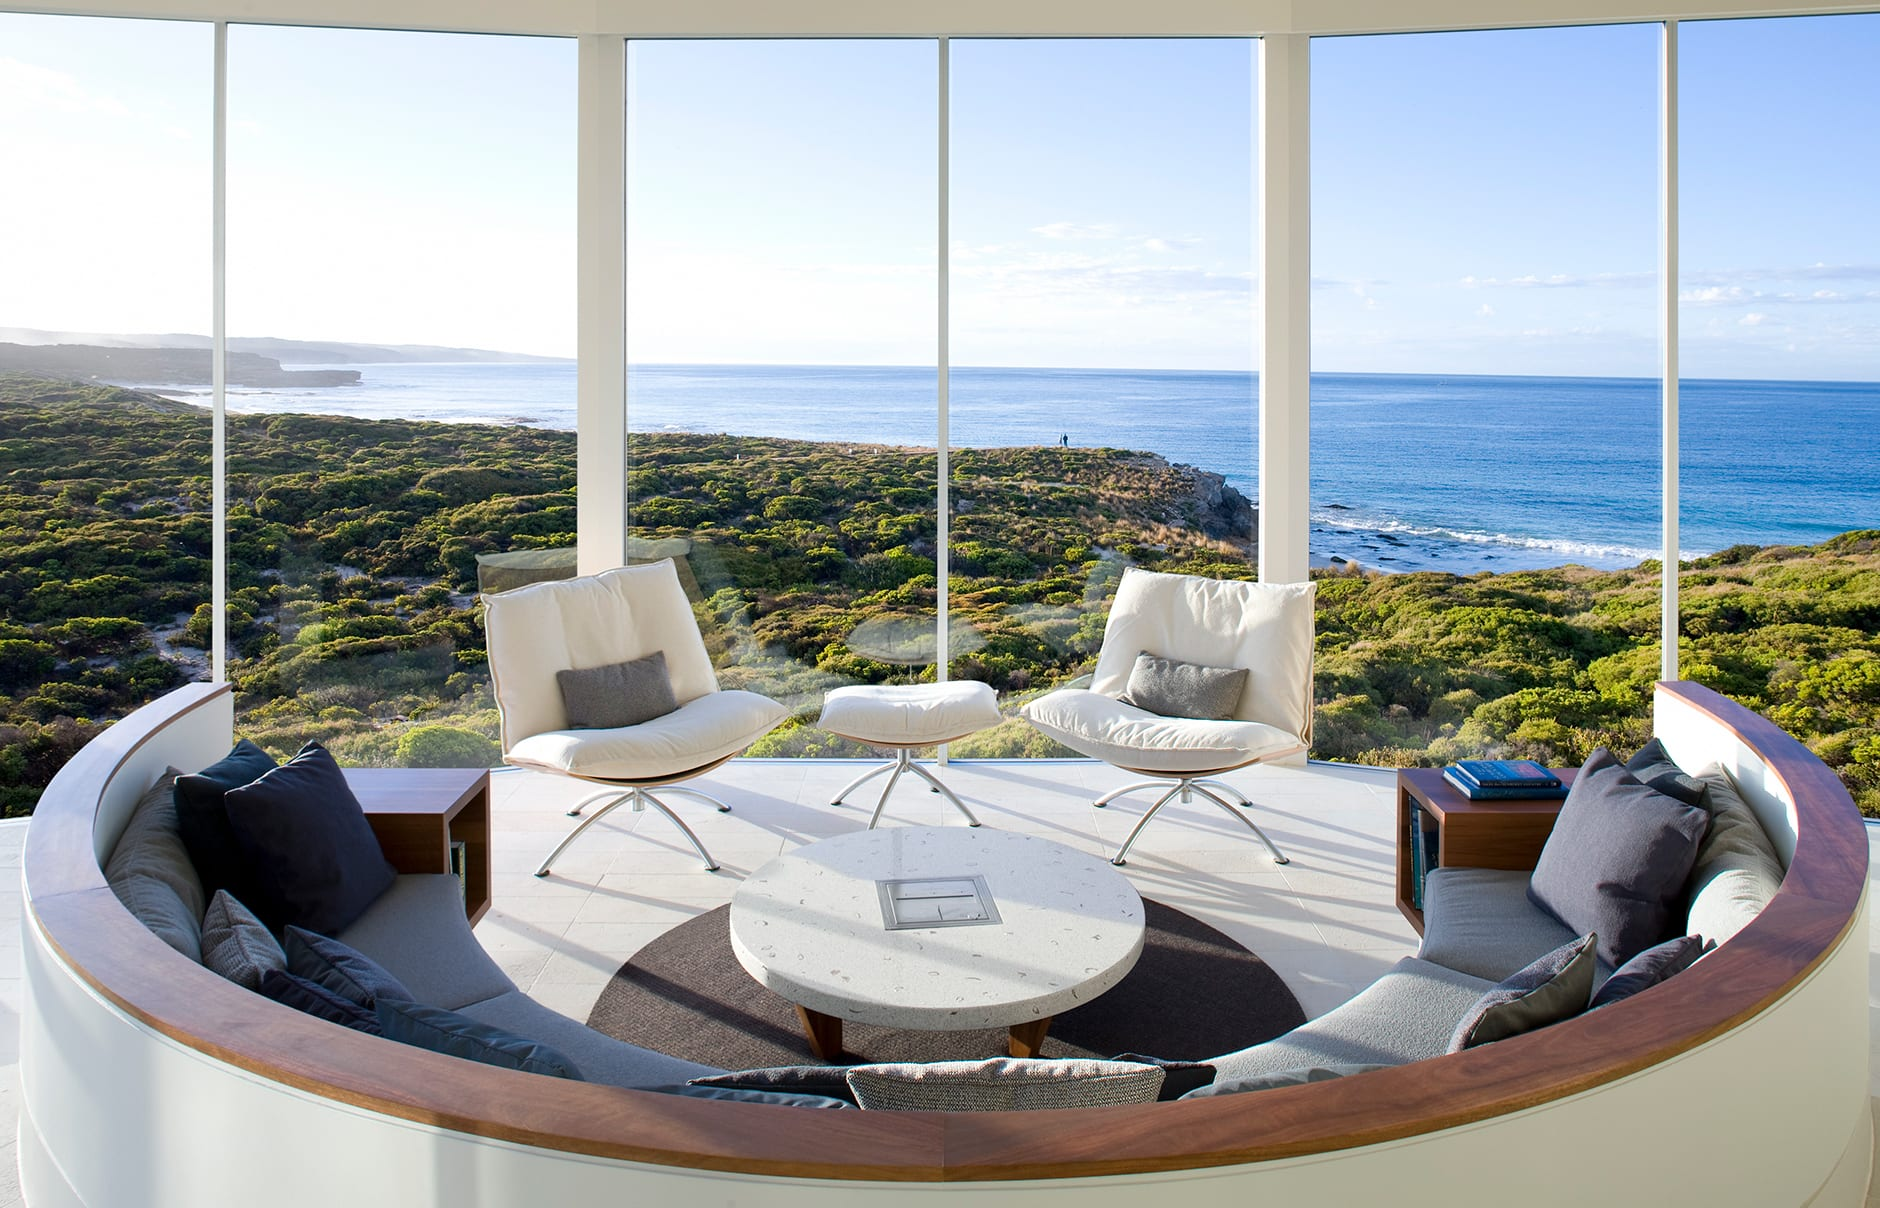 Osprey Pavillion Lounge. Southern Ocean Lodge, Kangaroo Island, Australia. © Luxury Lodges of Australia